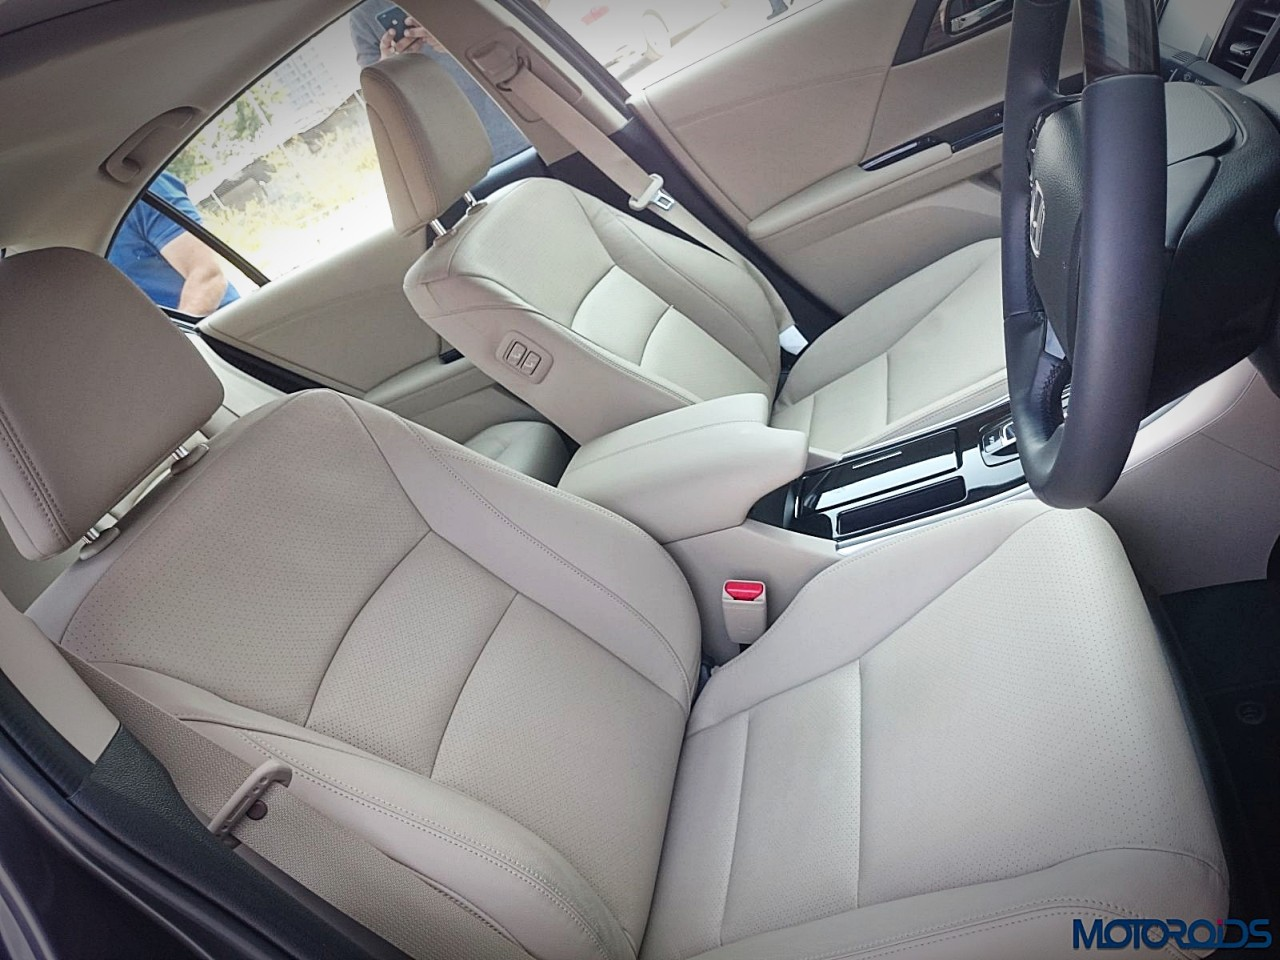 new-2016-honda-accord-hybrid-seats-3